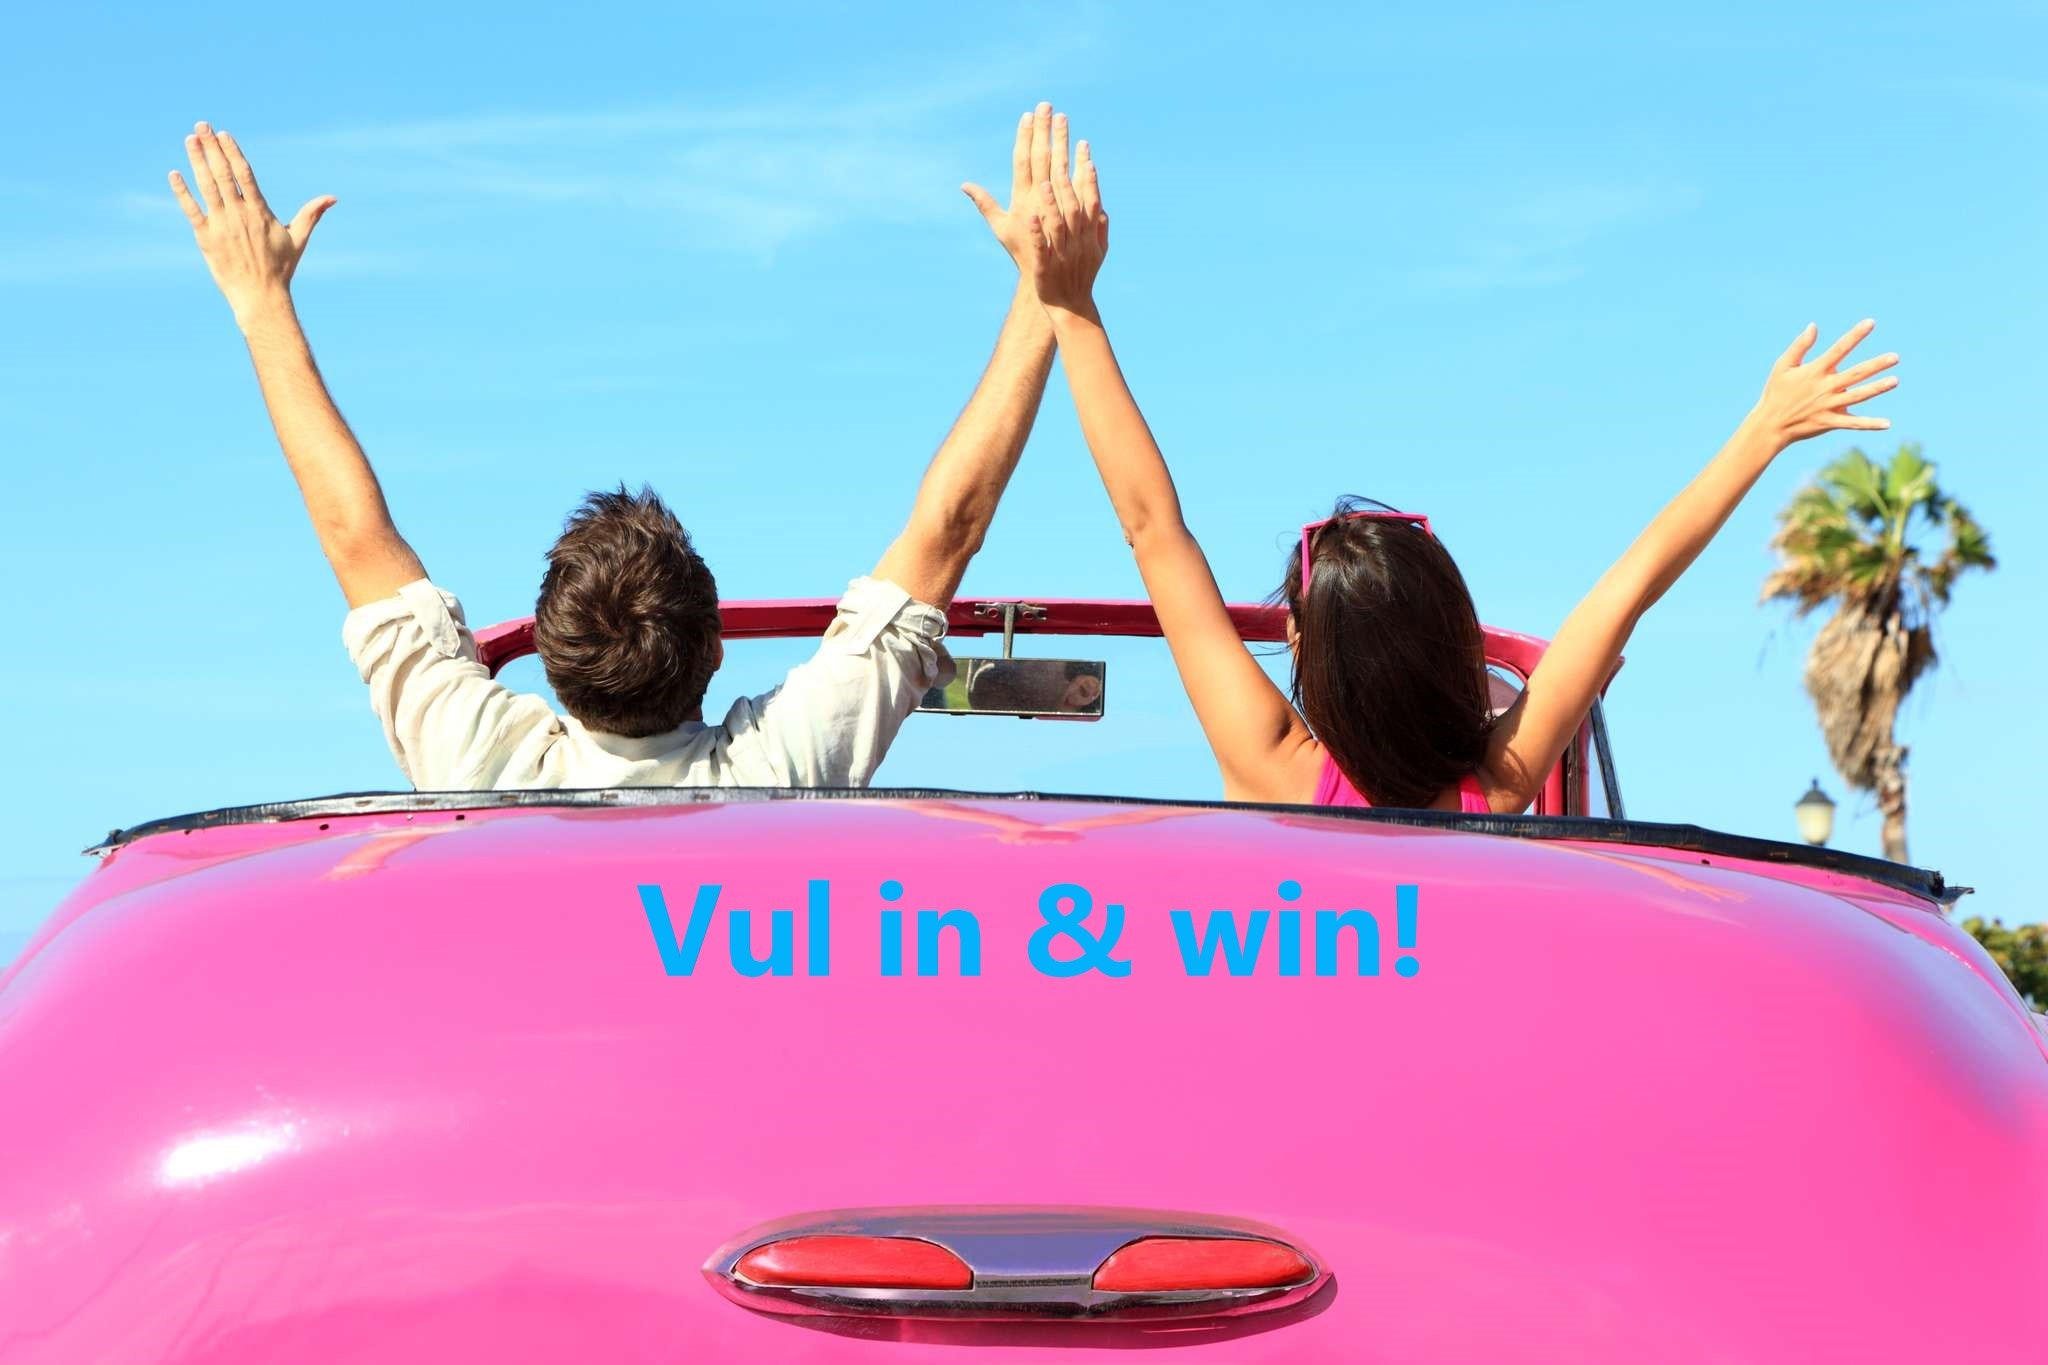 Vul in & win